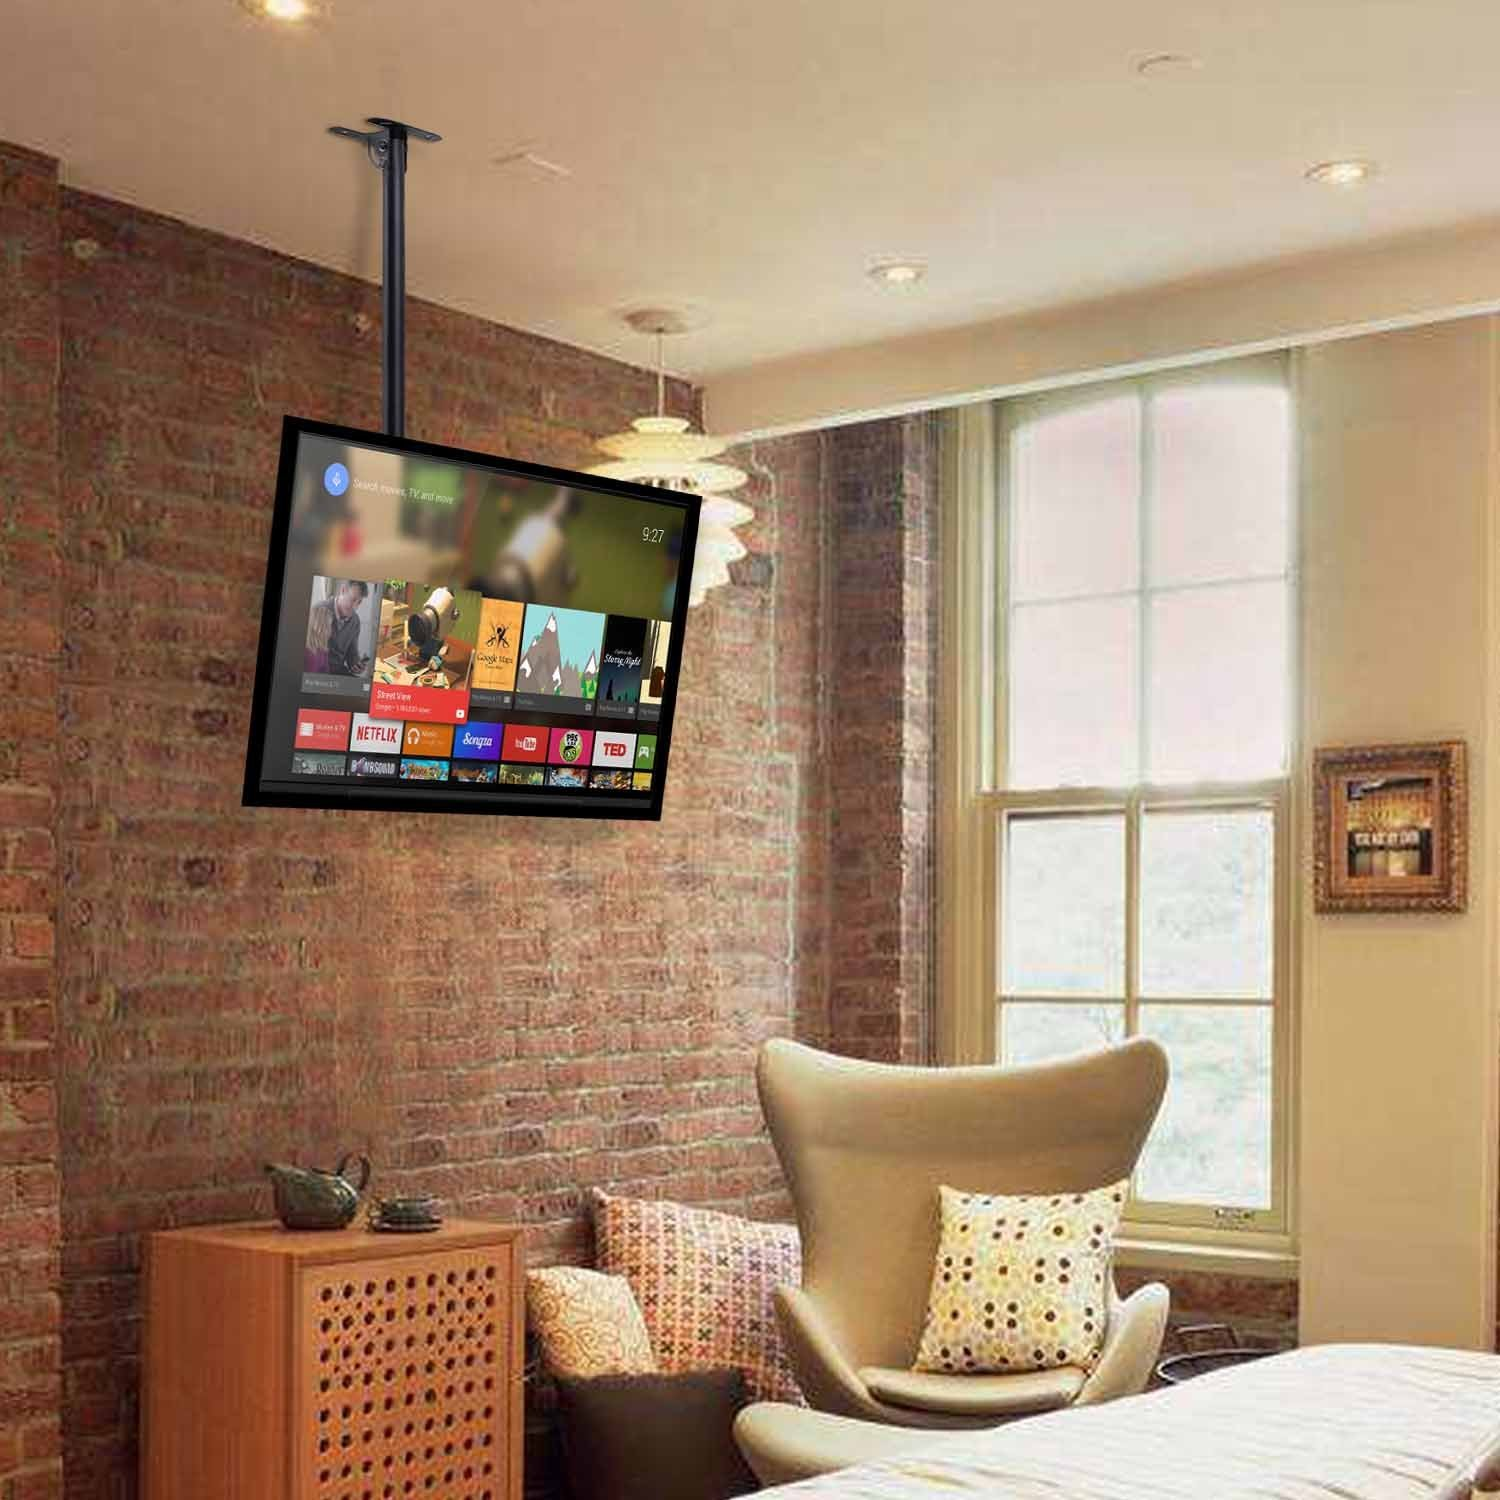 Altura Ideal Tv En Pared With Altura Ideal Tv En Pared With Altura Ideal Tv  En Pared.